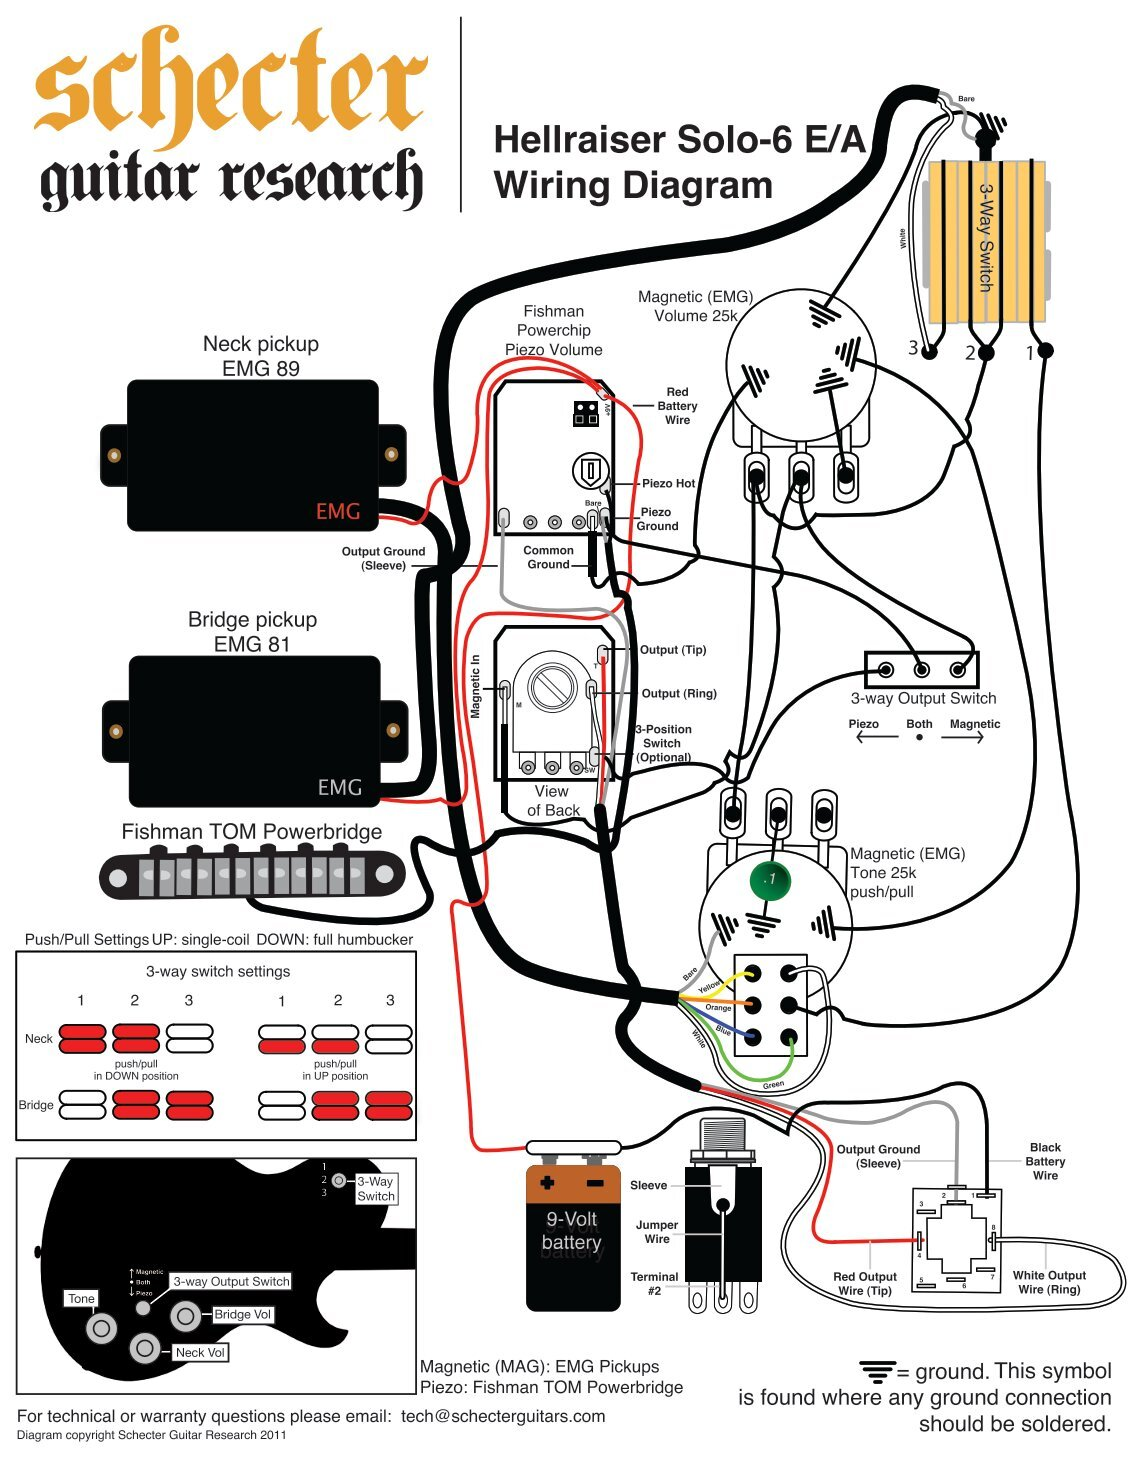 hellraiser solo 6 wiring diagram schecter guitars?quality\\\\\\\\\\\\\\\\\\\\\\\\\\\\\\\=85 emg hz wiring diagram color emg hz passive wiring diagram \u2022 205 ufc co Old EMG Wiring Diagrams at pacquiaovsvargaslive.co